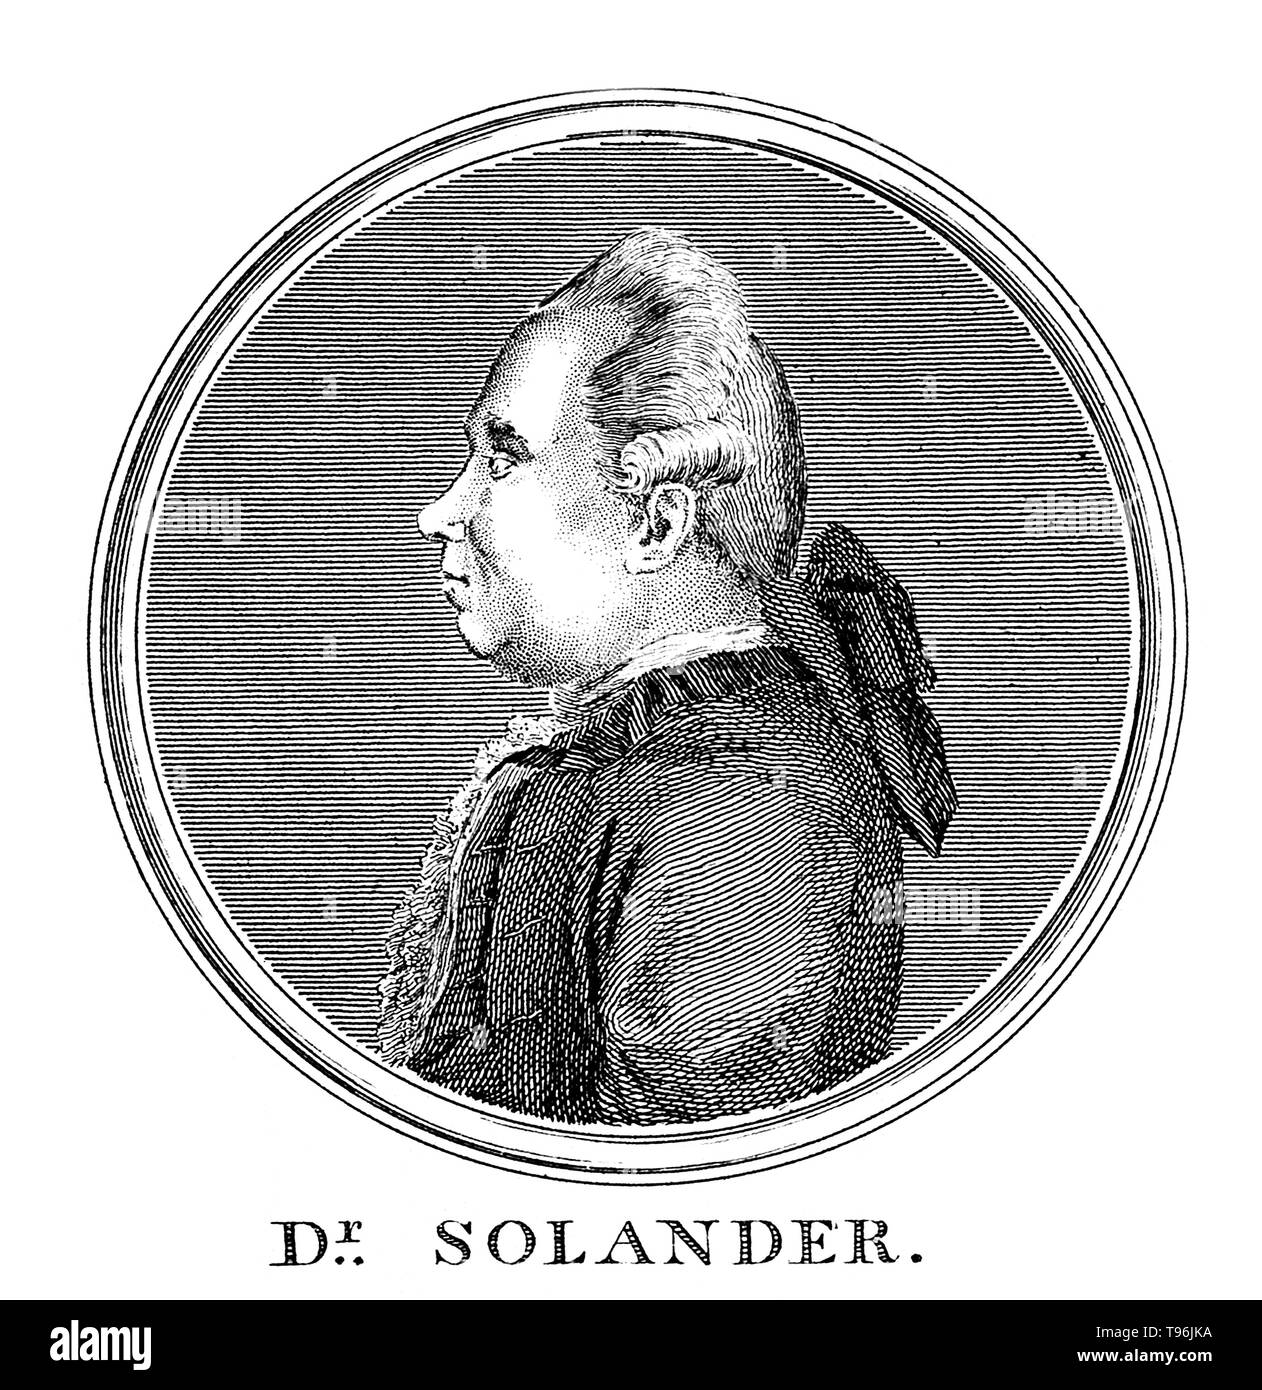 Daniel Carlsson Solander (February 19, 1733 - May 13, 1782) was a Swedish naturalist. In 1768, Solander gained leave of absence from the British Museum and accompanied Joseph Banks on James Cook's first voyage to the Pacific Ocean aboard the Endeavour. In 1772 he accompanied Banks on his voyage to Iceland, the Hebrides and the Orkney Islands. Between 1773 and 1782 he was Keeper of the Natural History Department of the British Museum. He died of a stroke at the age of 49. An autopsy was performed the next day, and revealed a brain hemorrhage. Solander's reputation has been profoundly influenced - Stock Image